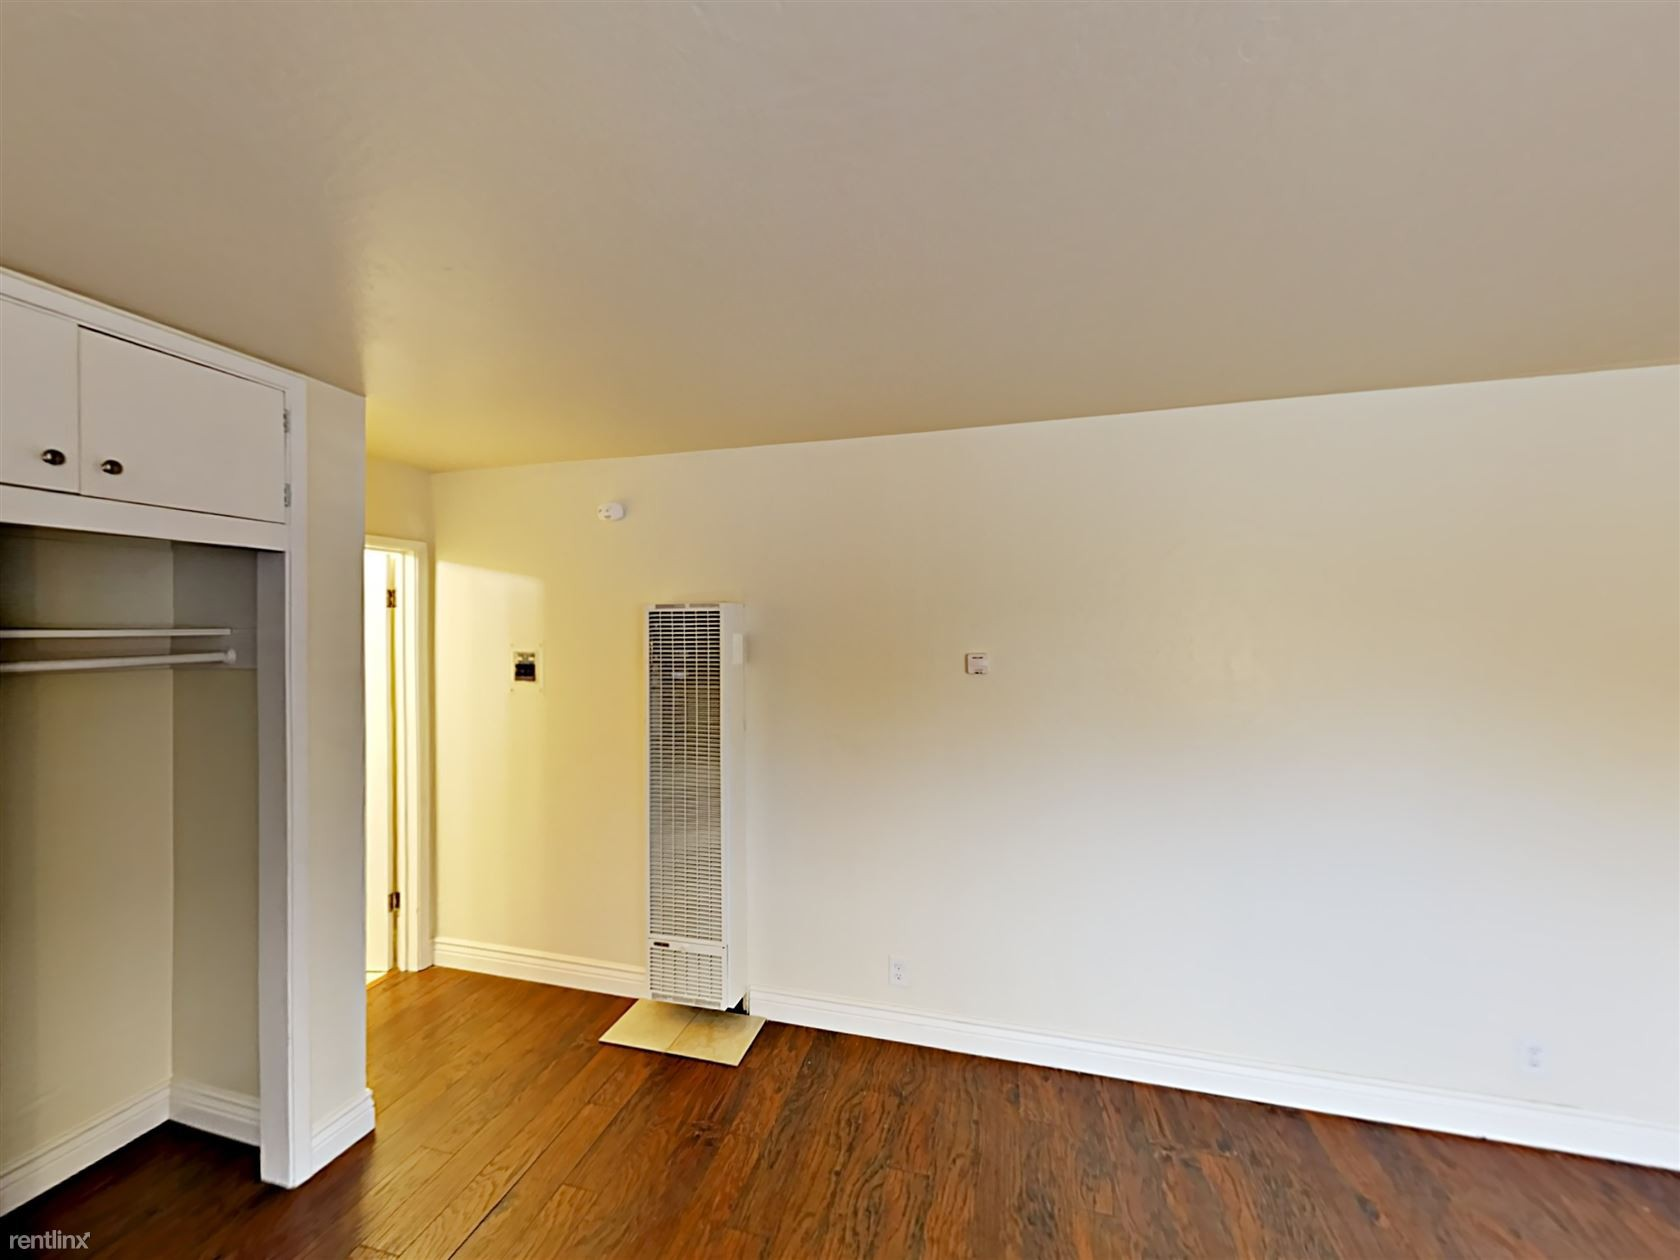 The Cheapest Apartment Rentals In San Jose Explored Hoodline